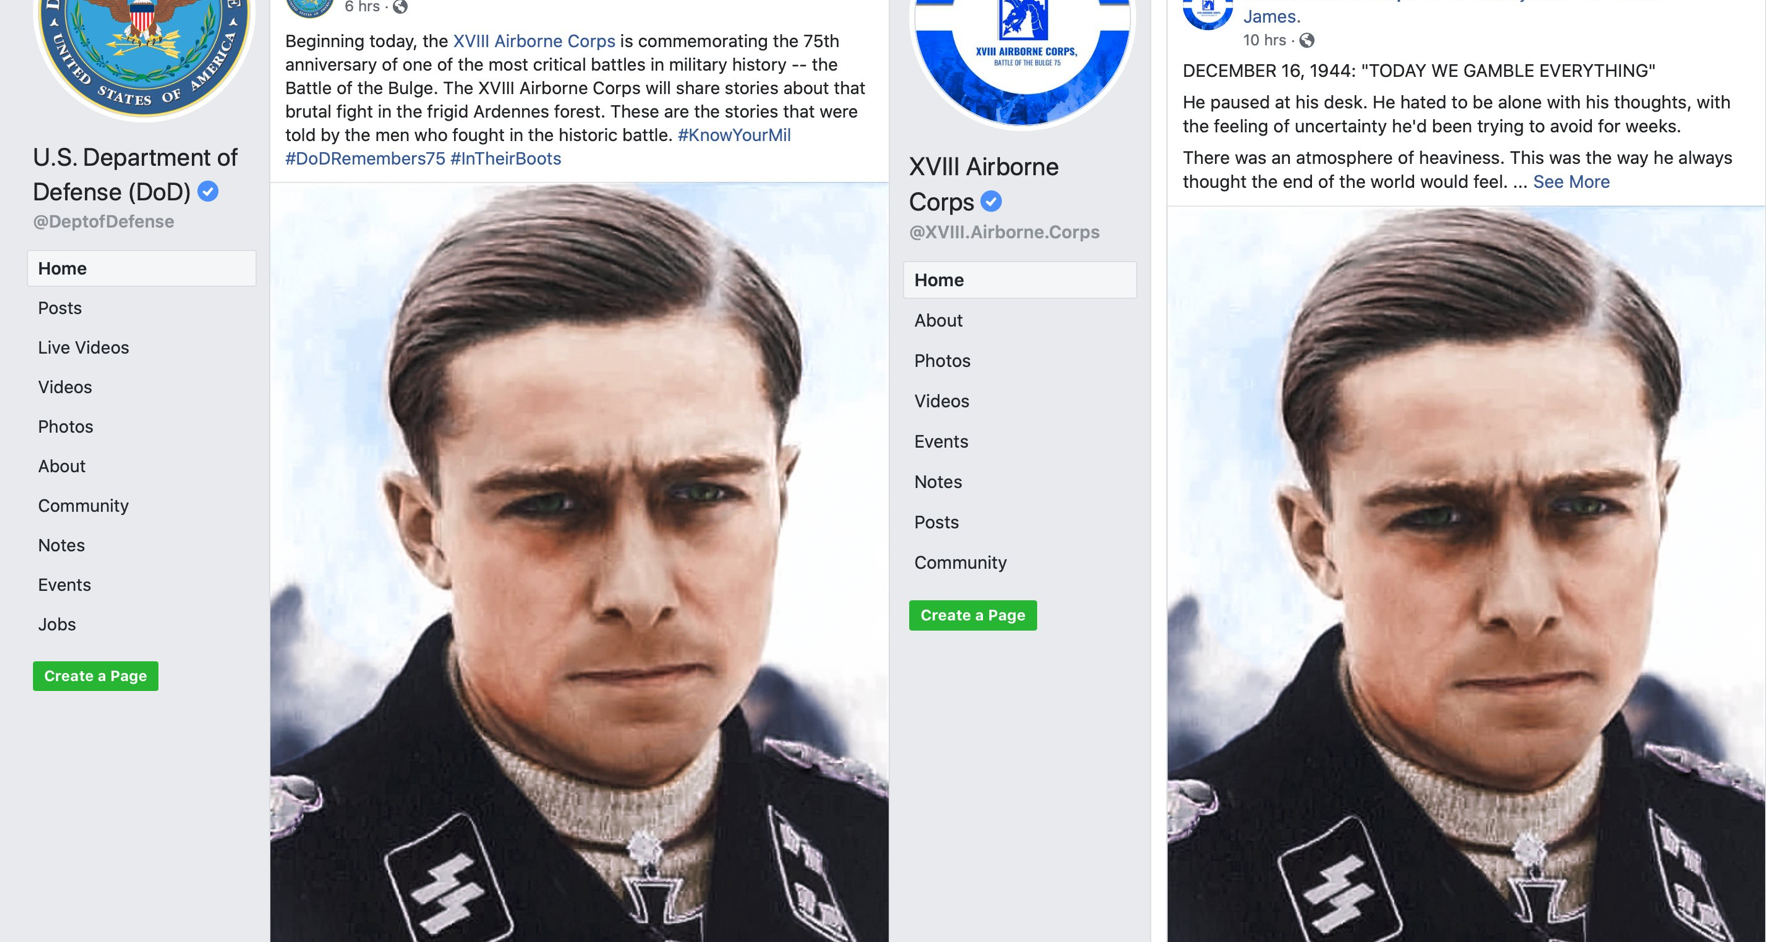 On The Anniversary Of The Battle Of The Bulge, The Department Of Defense's Official Facebook Page Featured A Compassionate Story About… A Nazi?